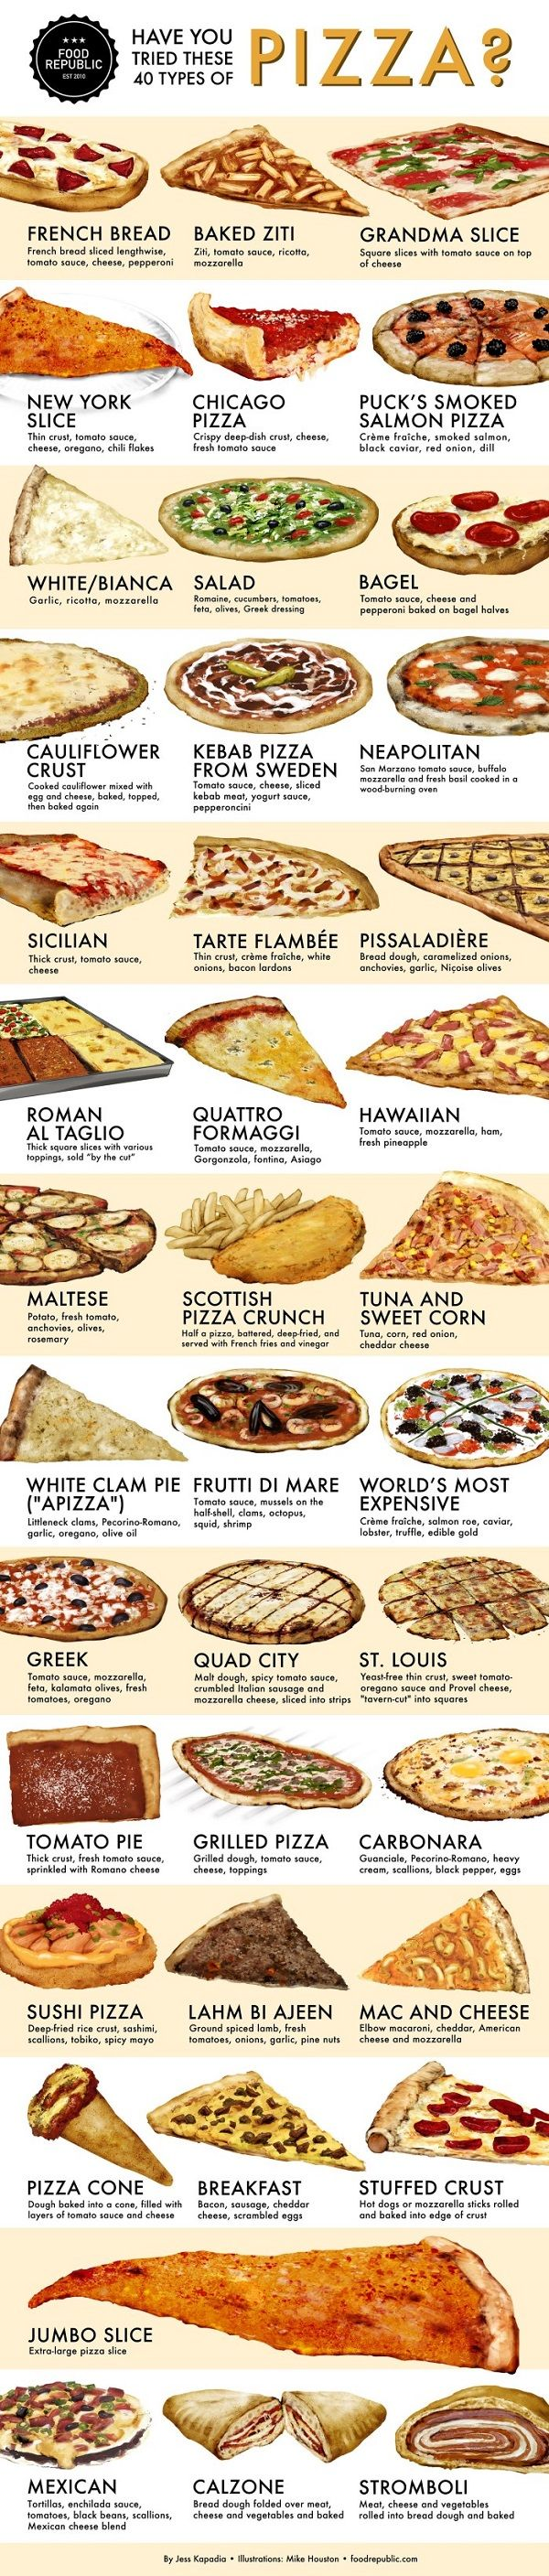 40 Different Pizzas You Need To Try Before You Die